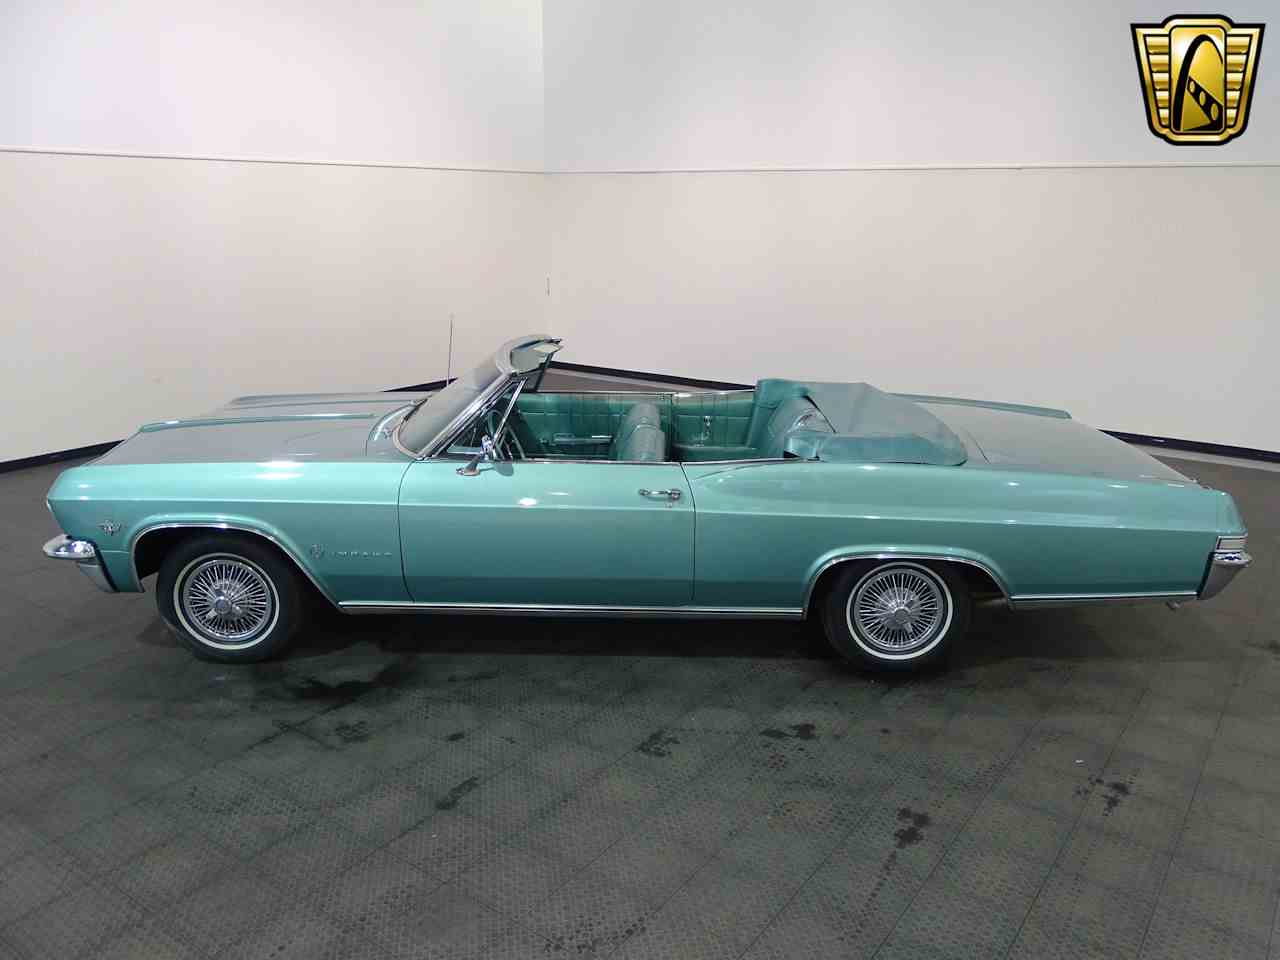 Large Picture of Classic 1965 Chevrolet Impala located in Indiana Offered by Gateway Classic Cars - Indianapolis - L5YV